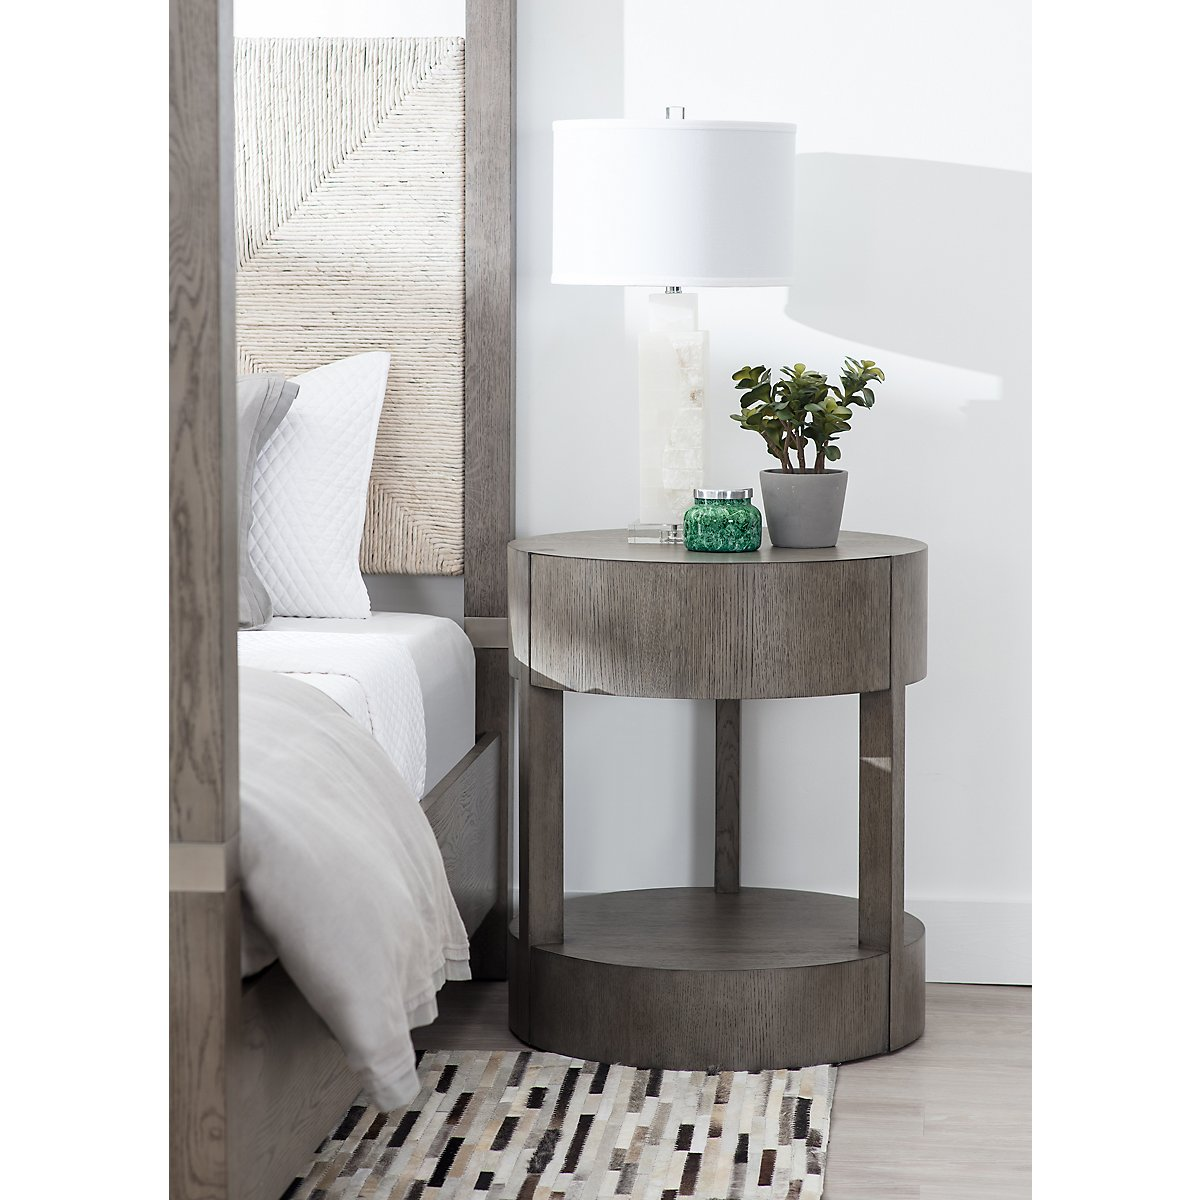 Calder Light Tone Wood Nightstand